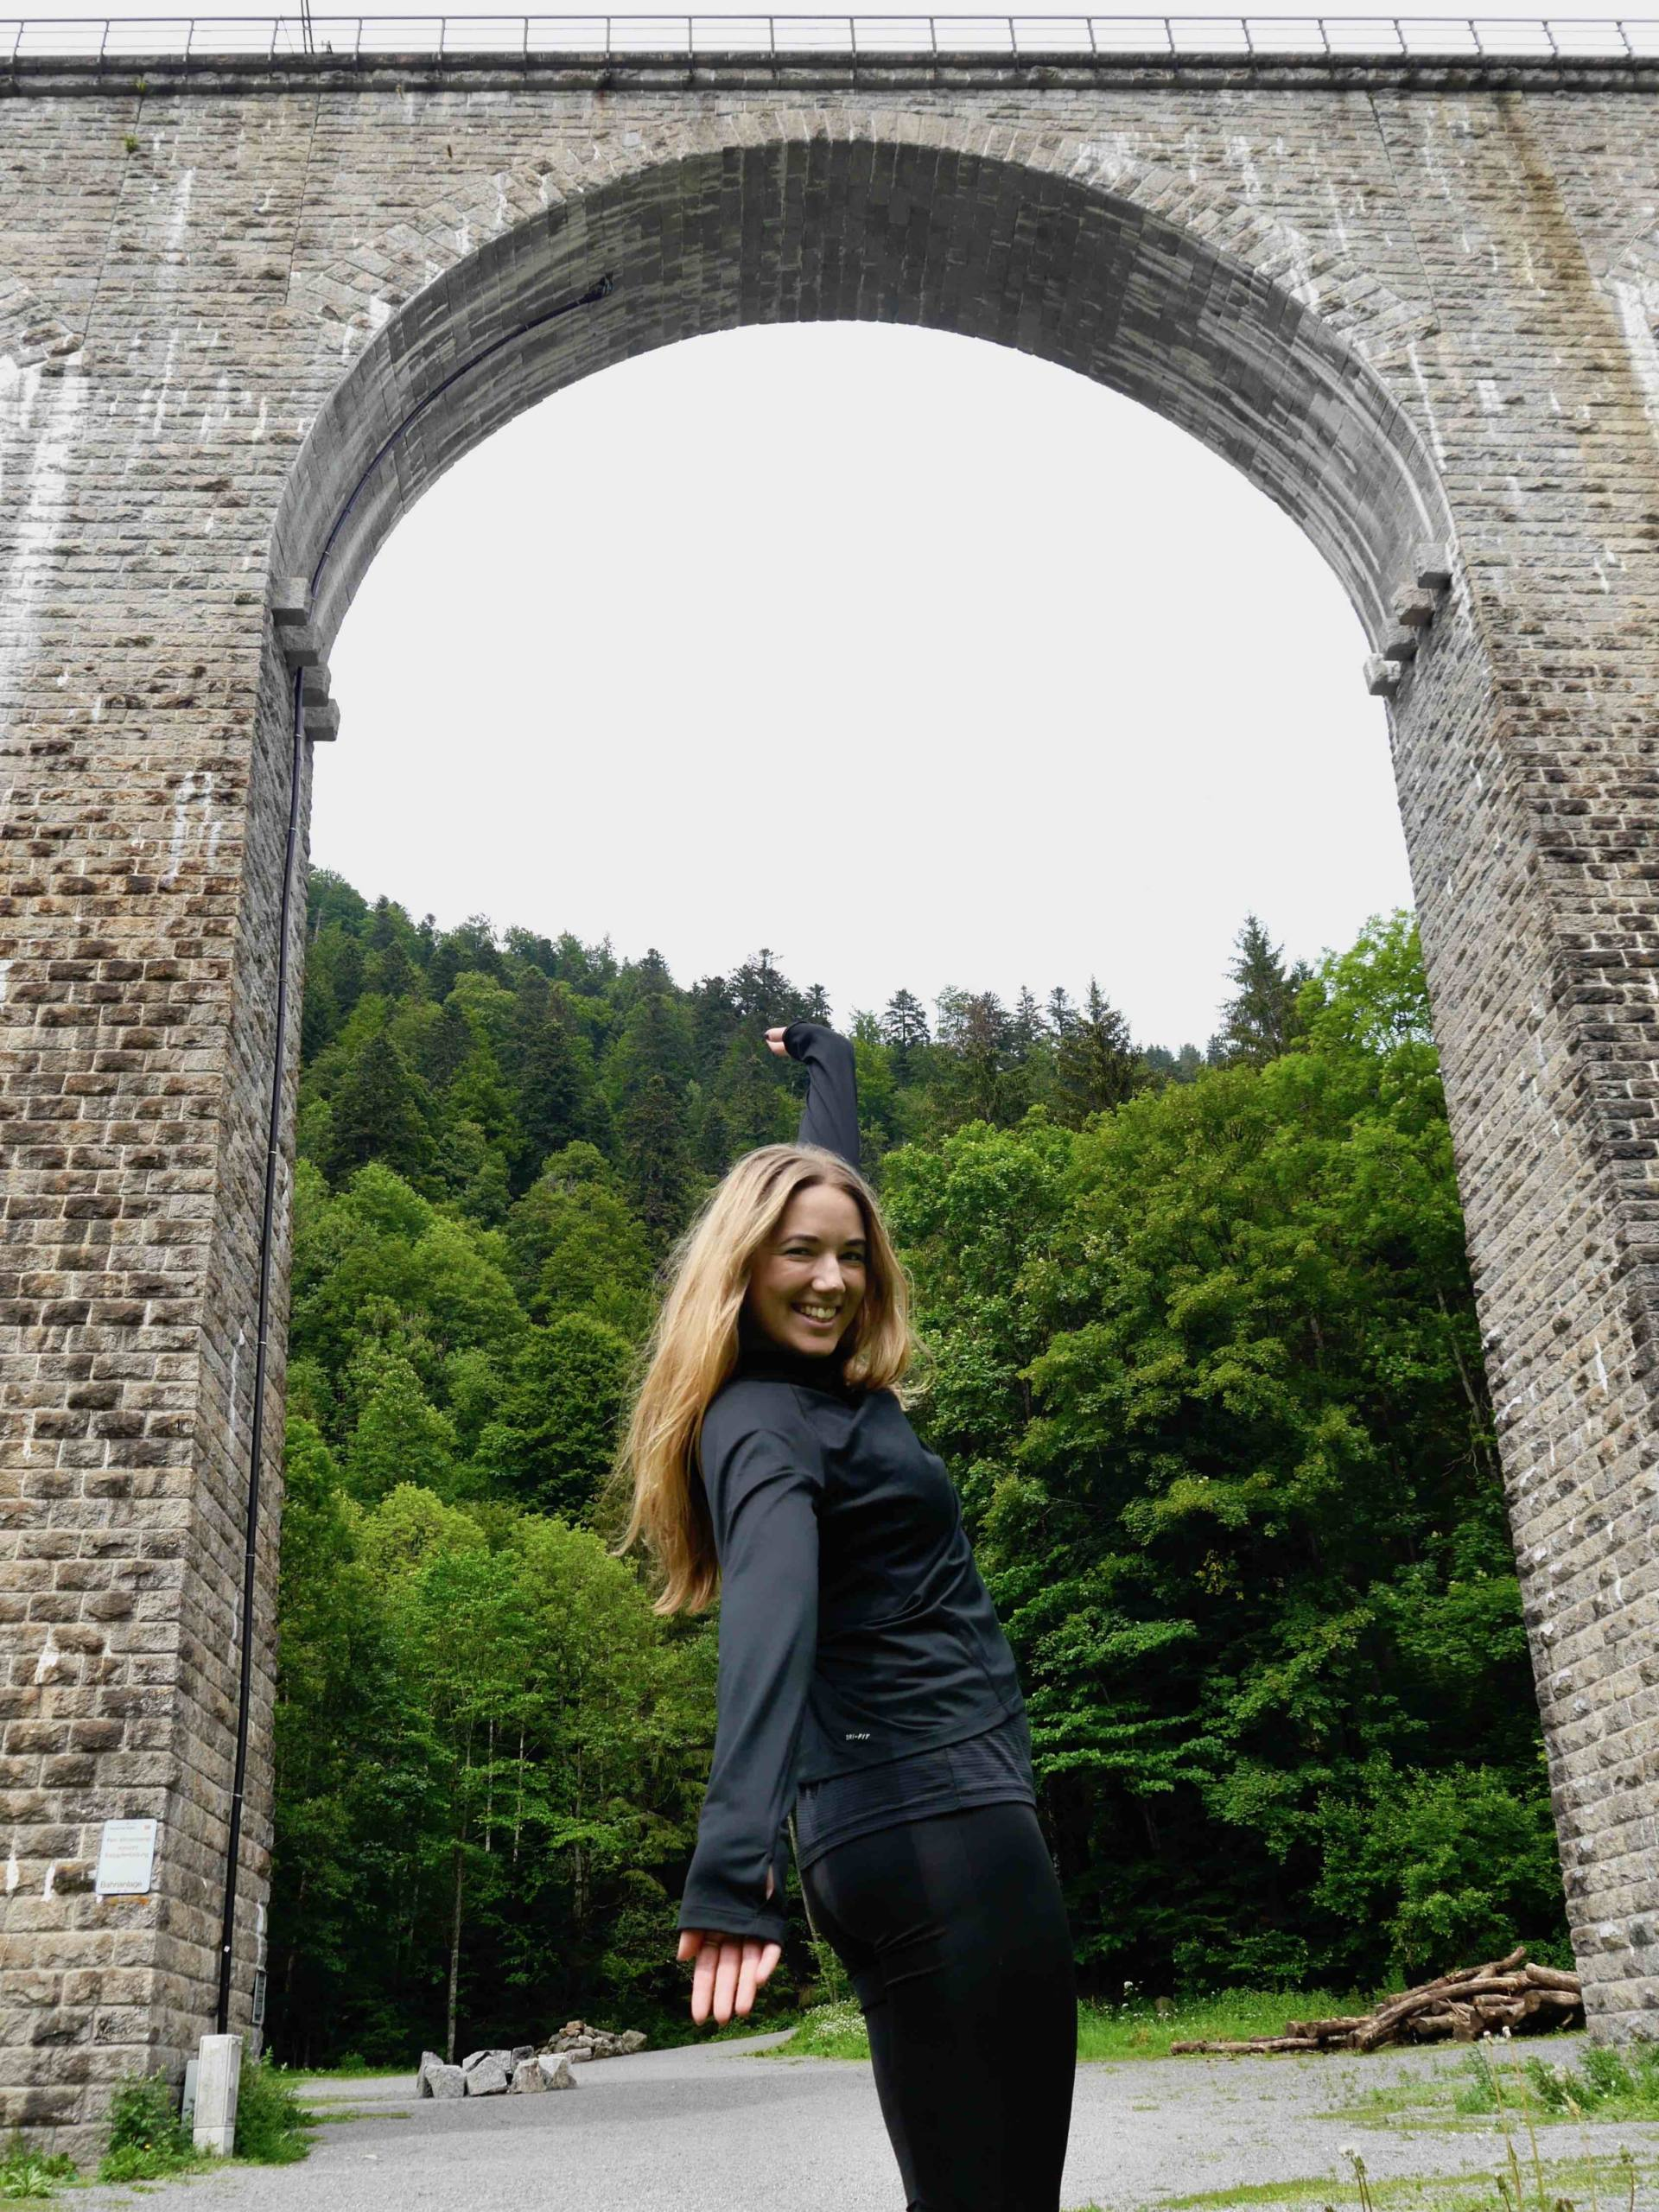 Ravennaschlucht | Ravenna Gorge | Things to do in the Black Forest